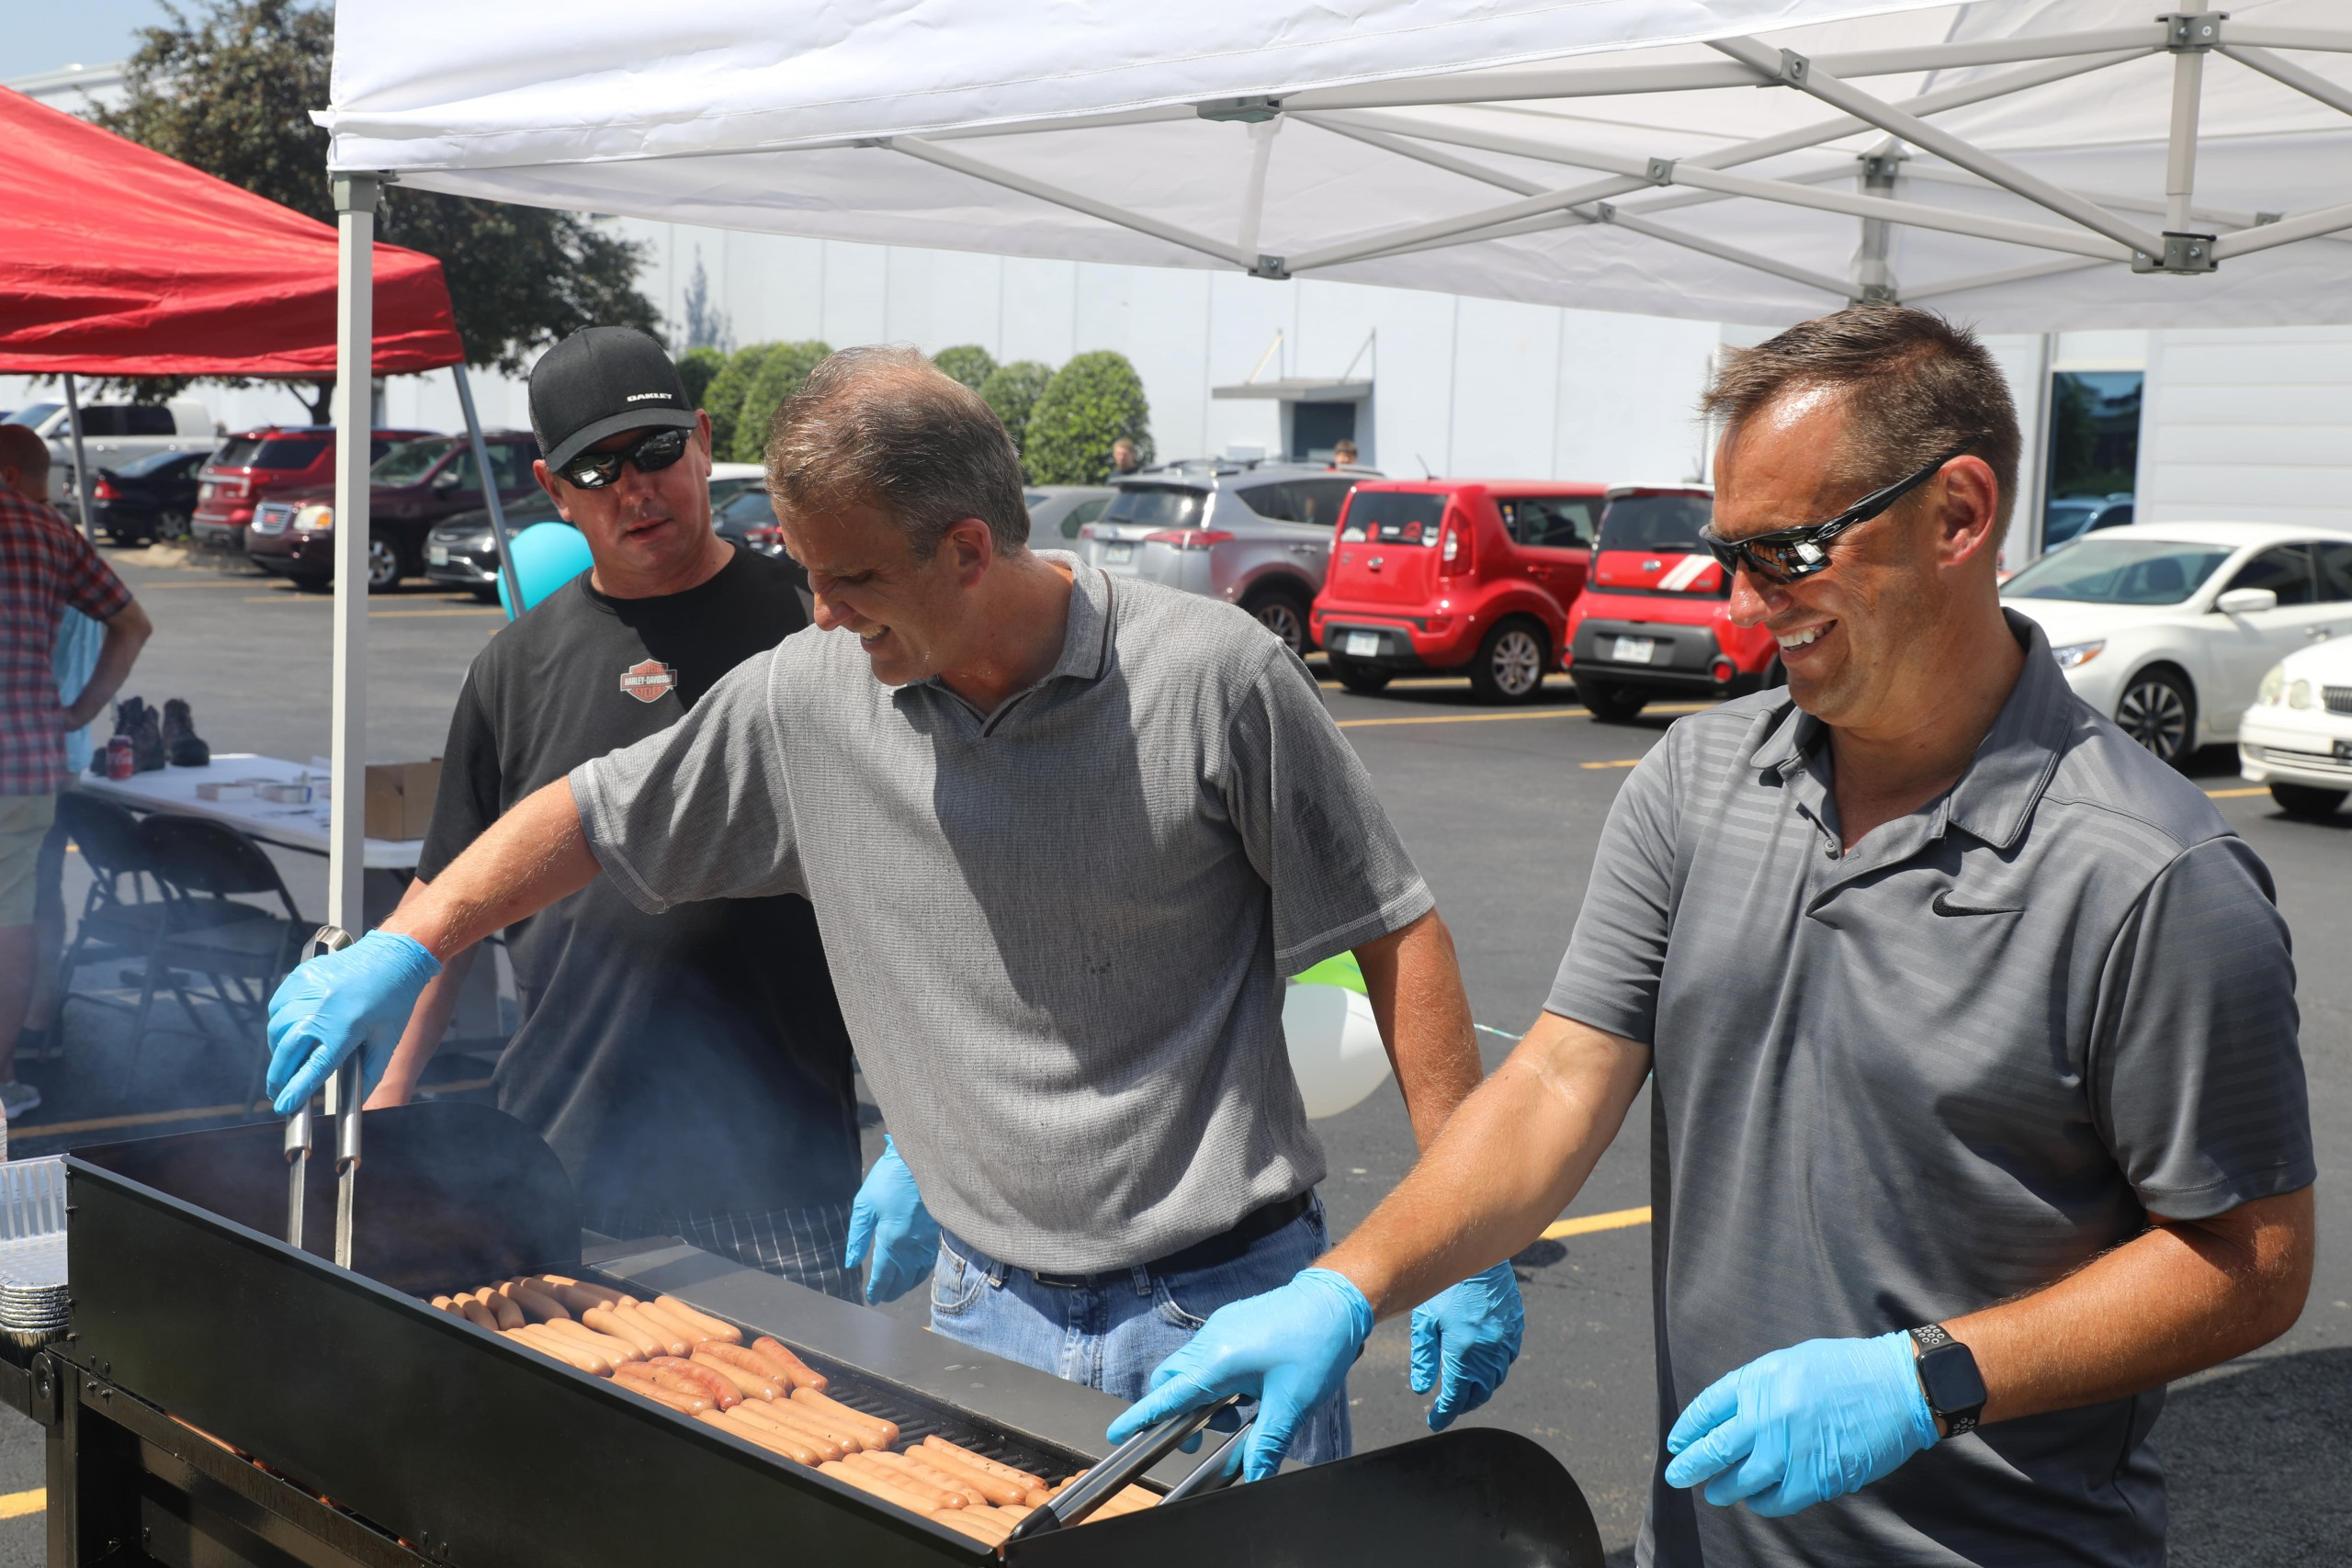 Grilling at the Wachter Safety Fair